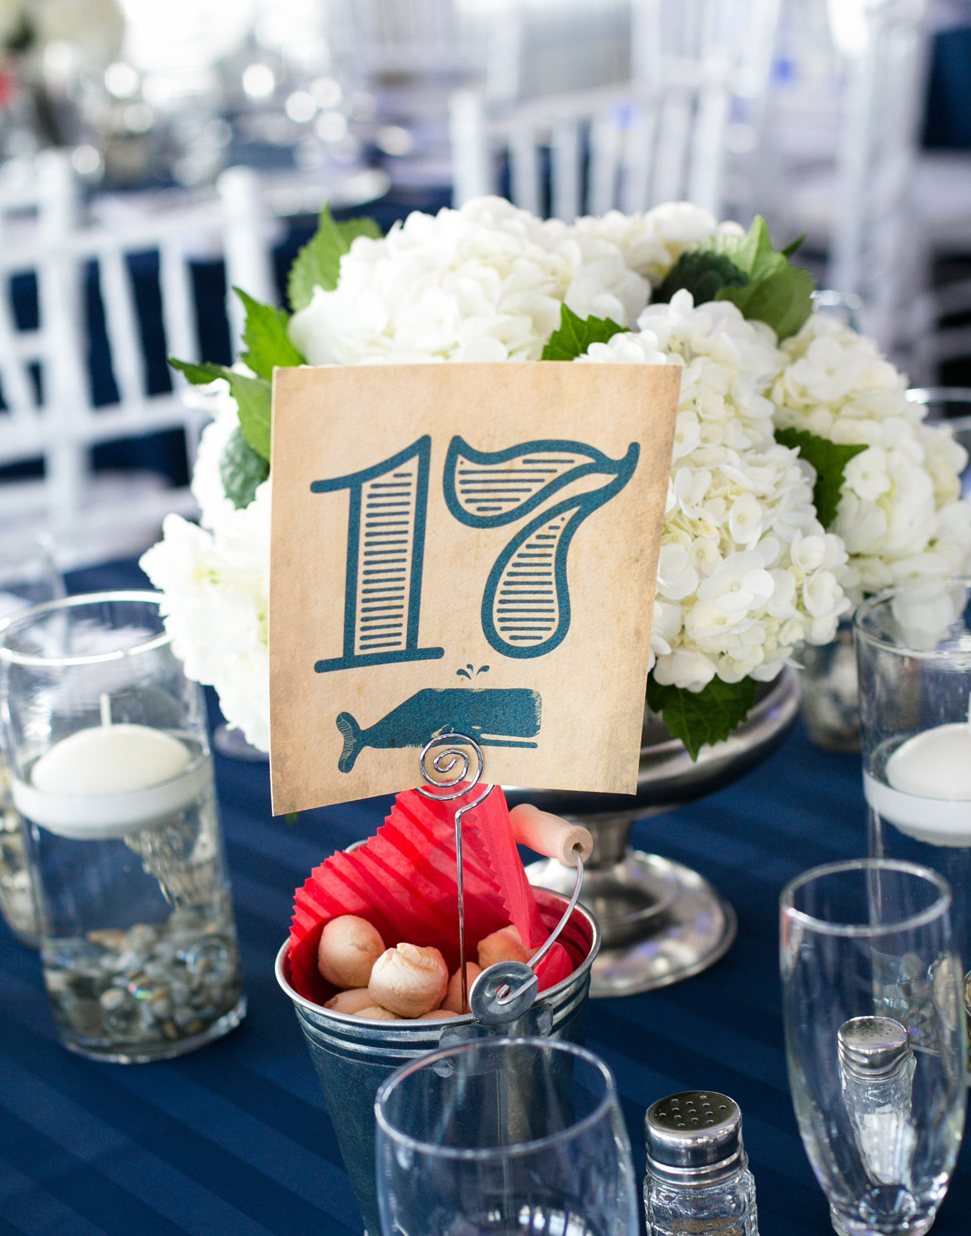 Antiqued table numbers.